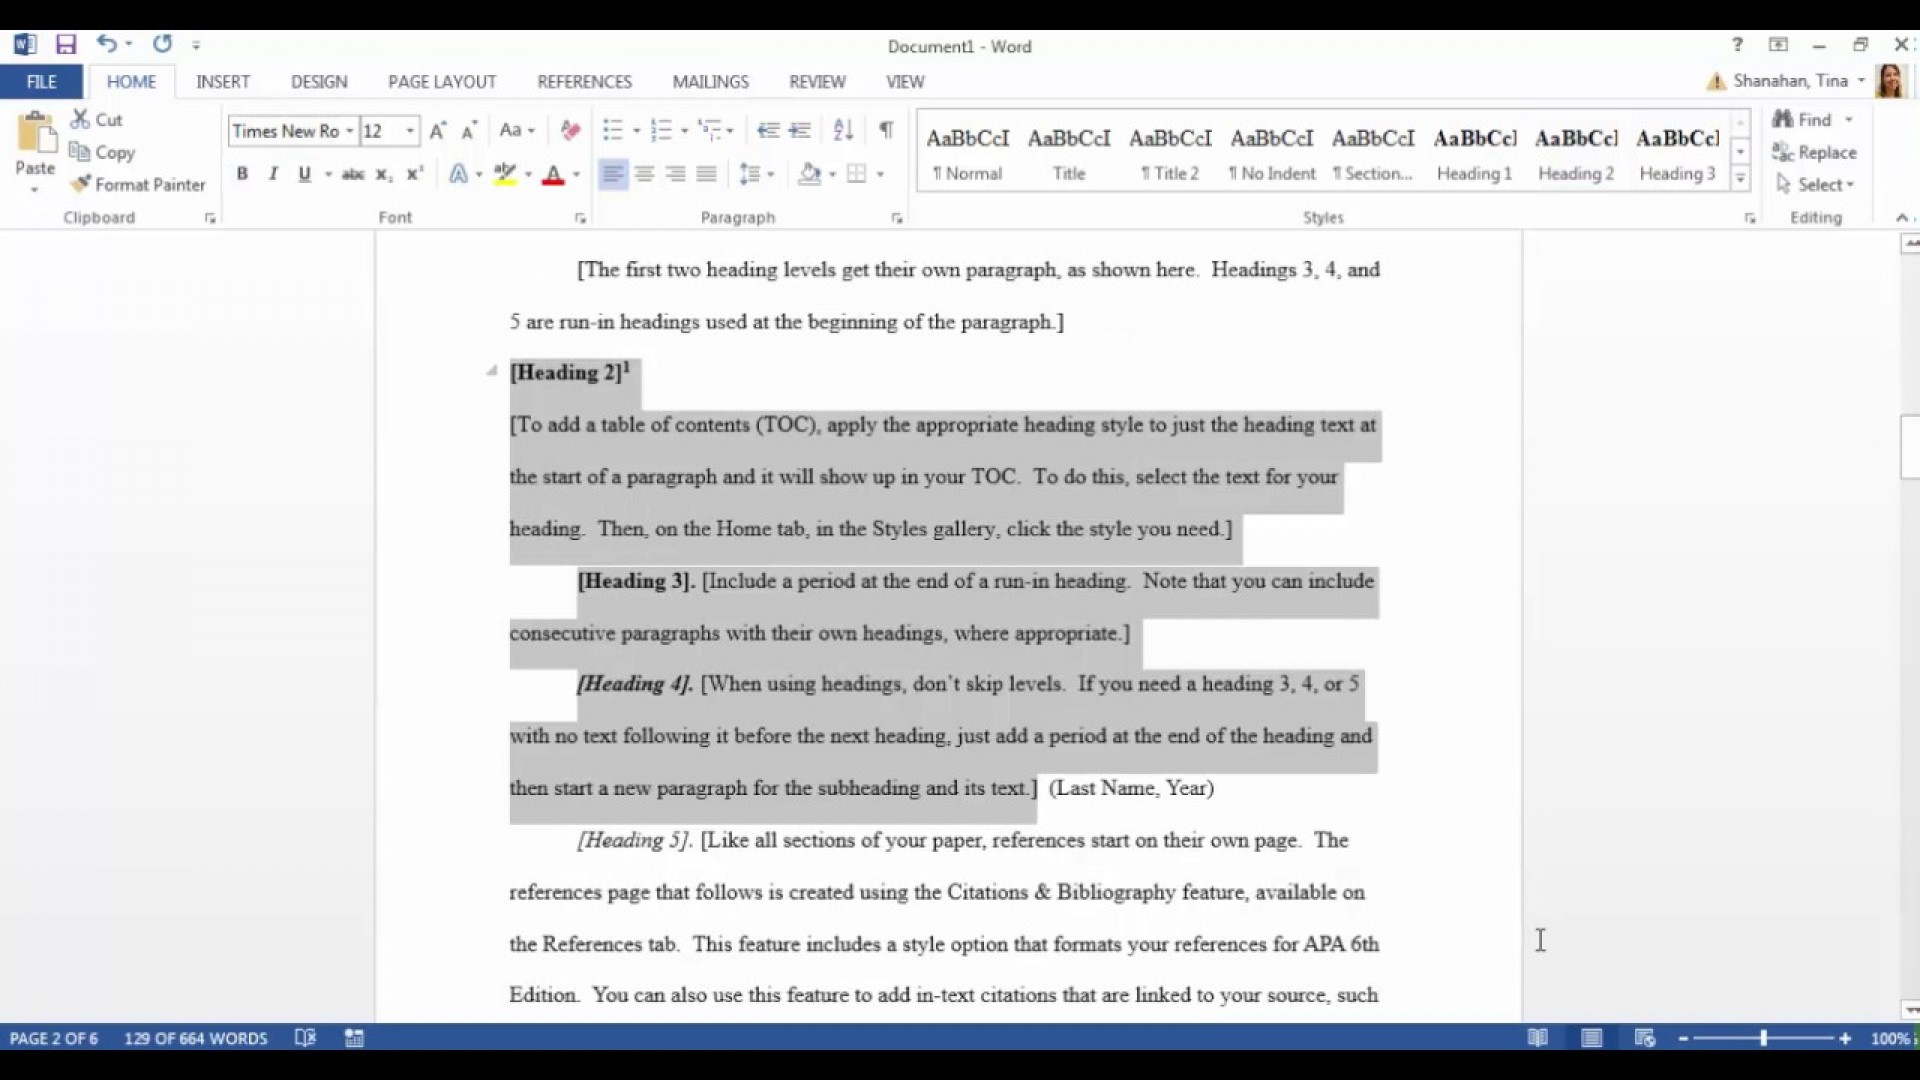 006 Maxresdefault Apa Style Research Paper Template Fantastic Word 1920